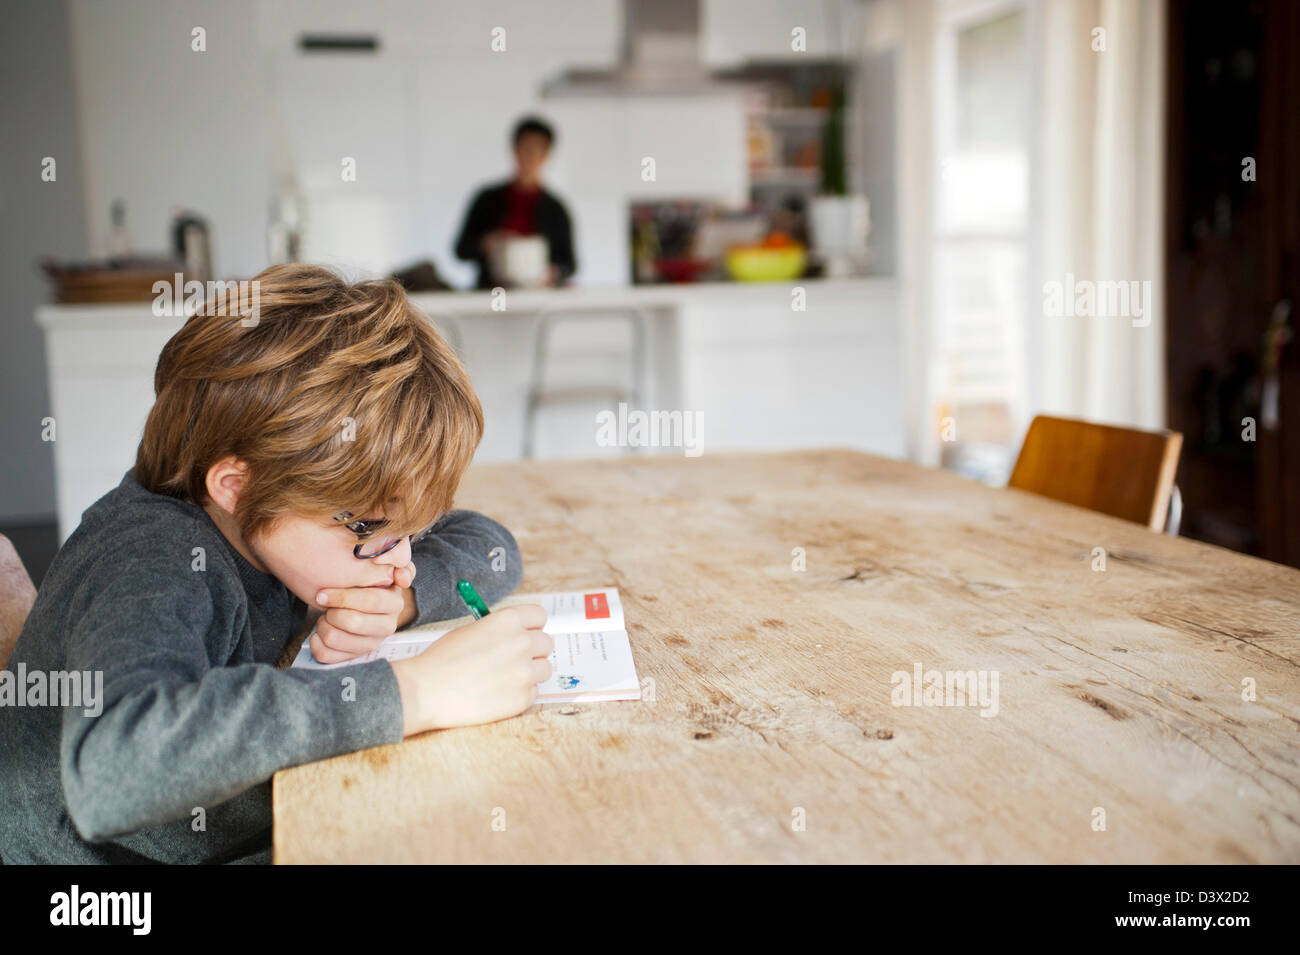 10 Year Old Boy Is Doing Homework At The Kitchen Table In A Modern House,  He Wears Glasses.